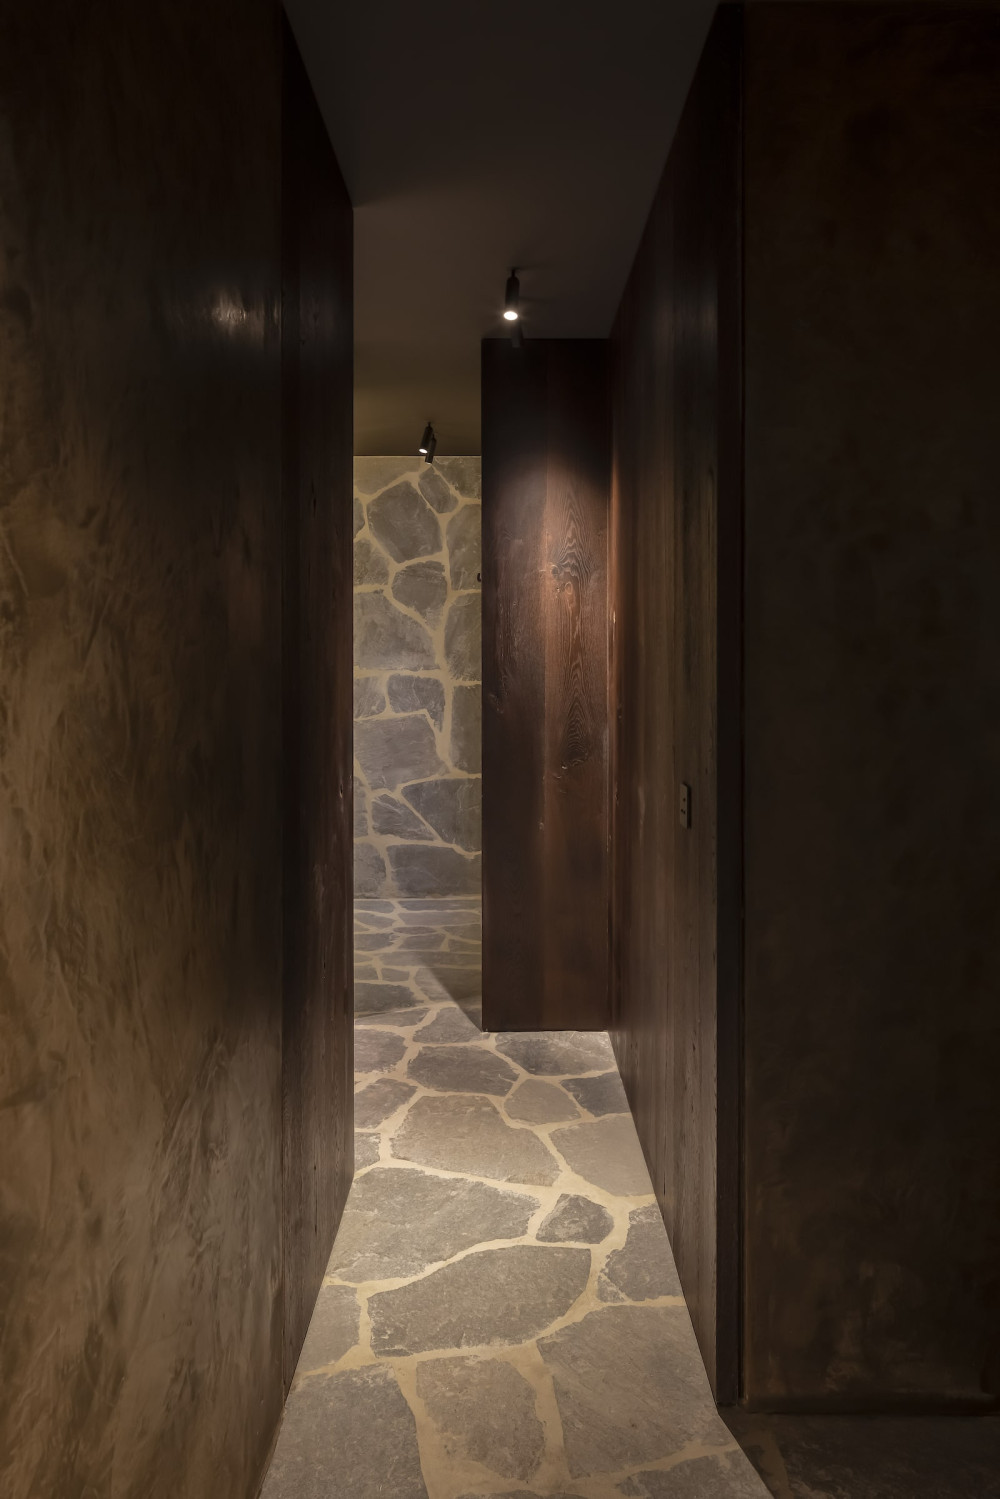 ignant-architecture-andy-kerstens-mud-residence-011.jpg